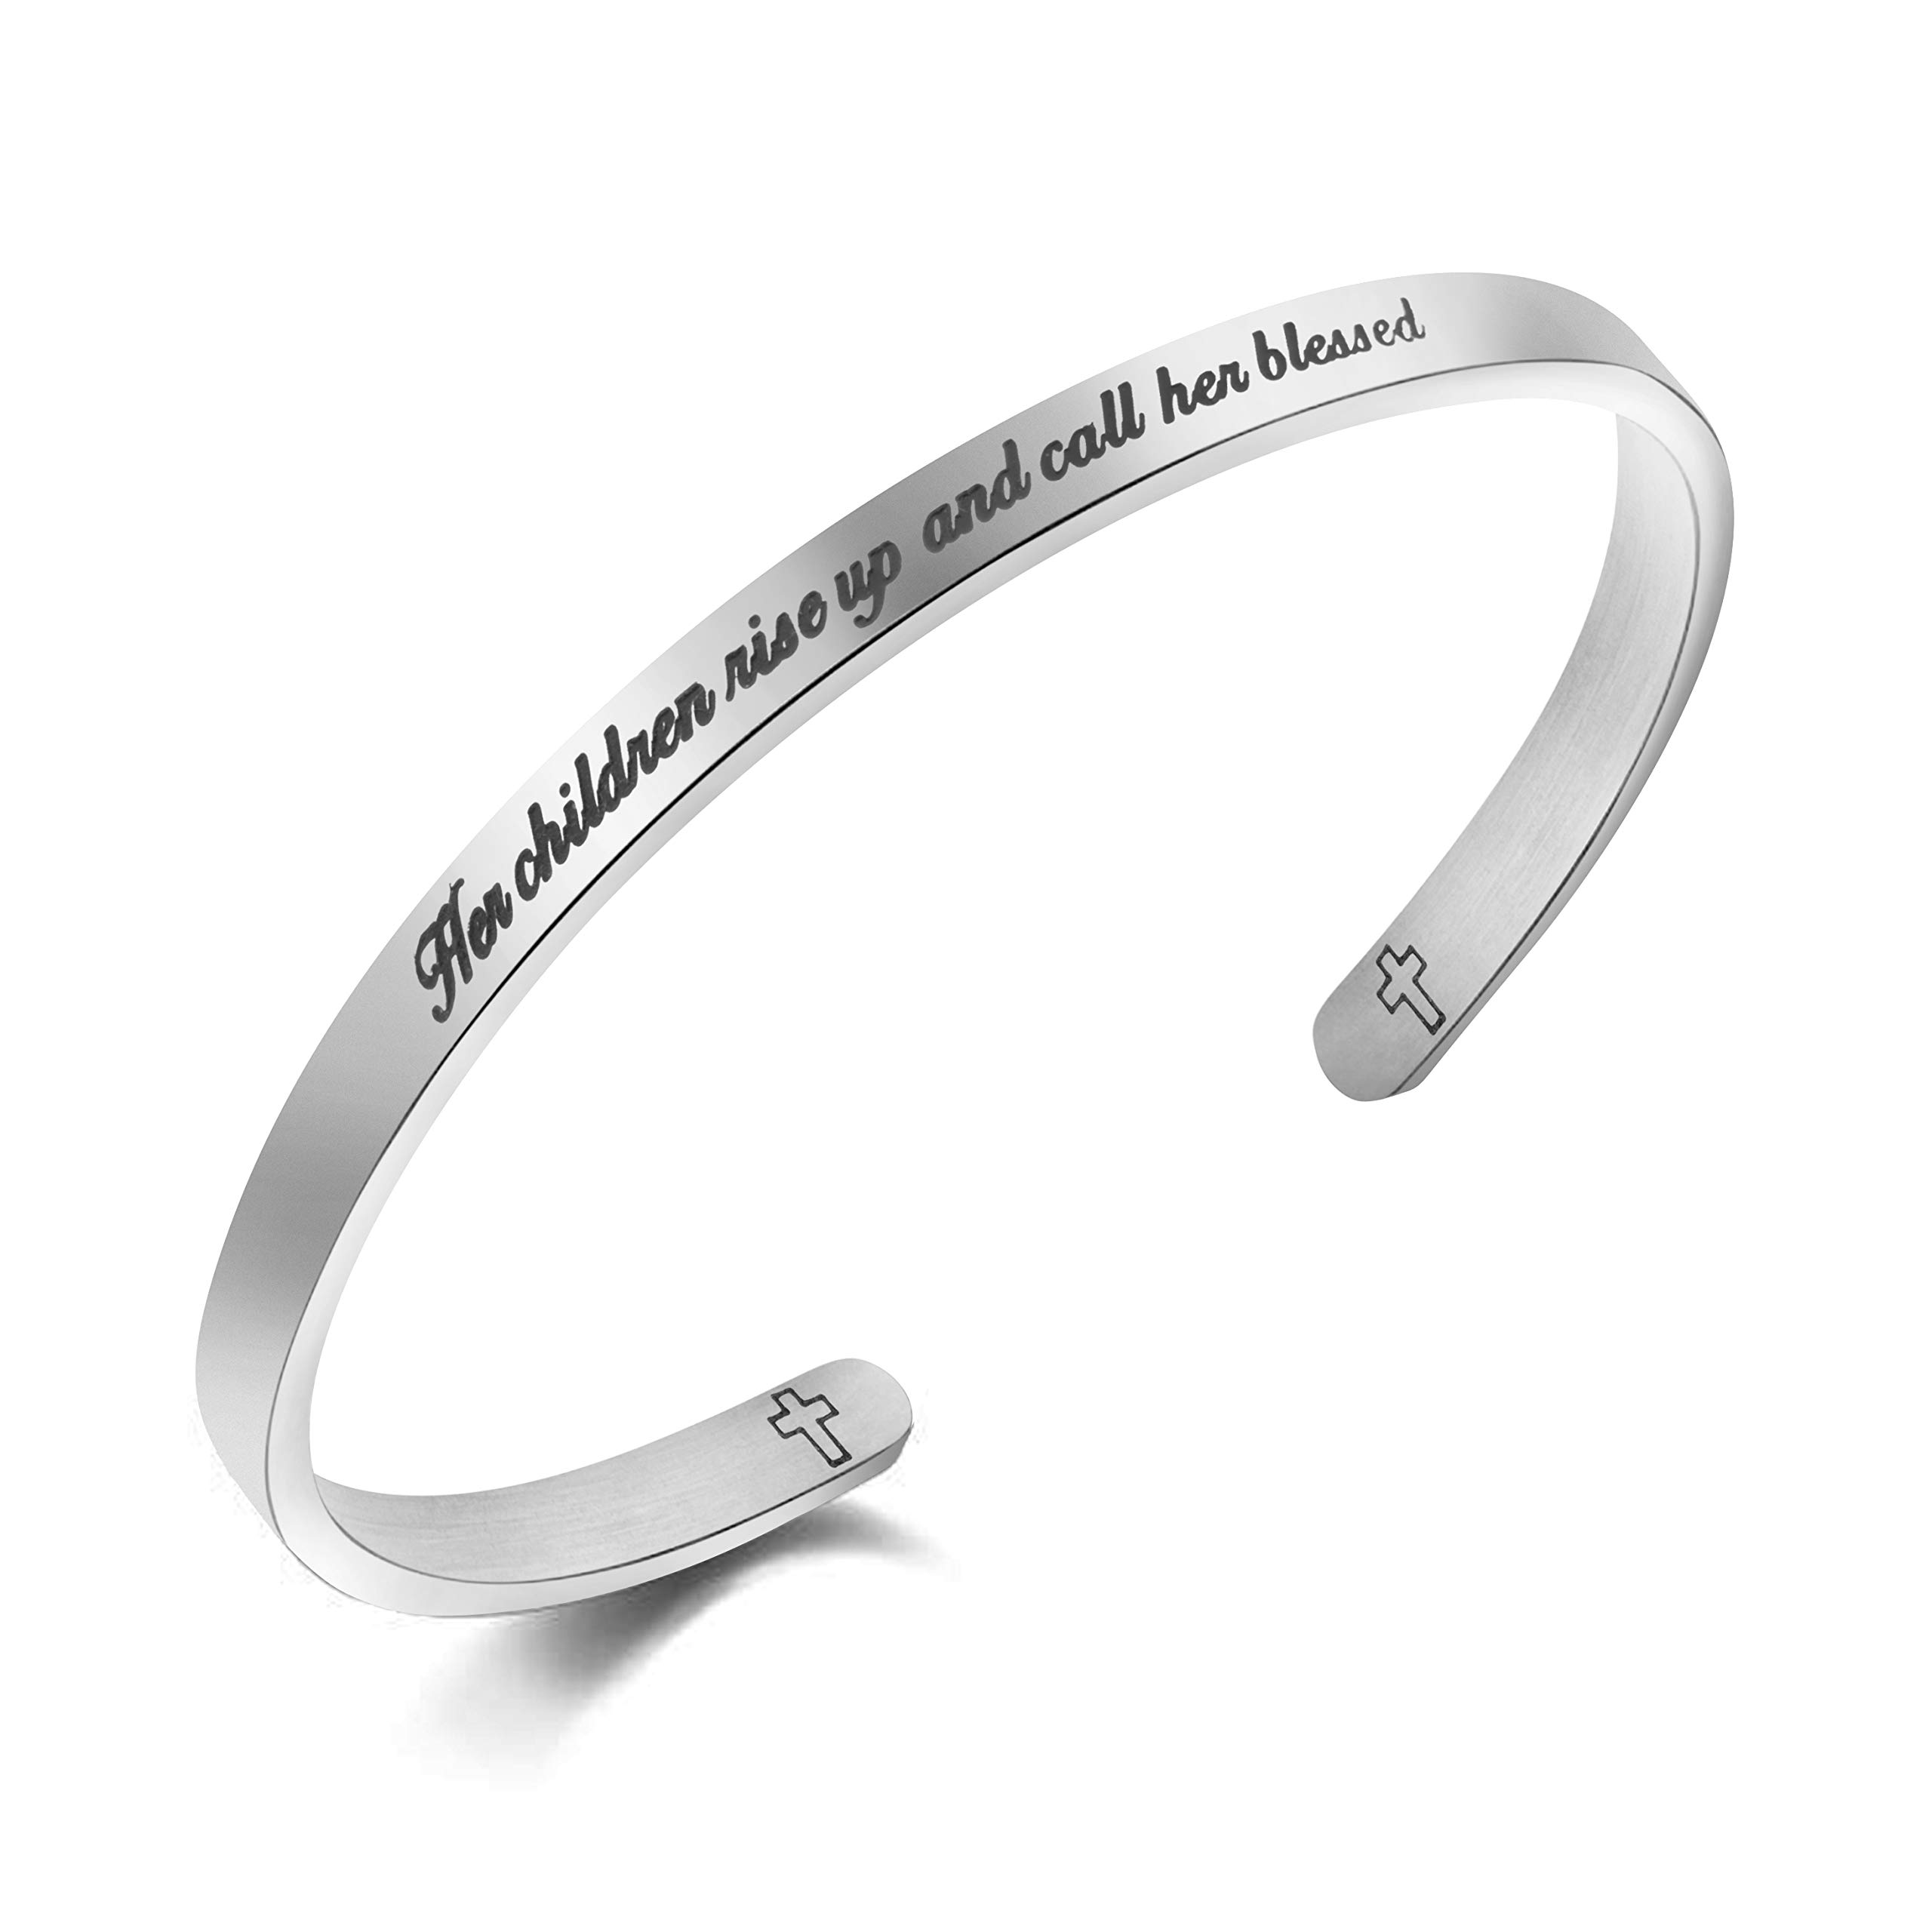 Gifts for Mom Bangle Bracelets for Mother Day Jewelry Stainless Steel''Her children rise up and call her blessed''